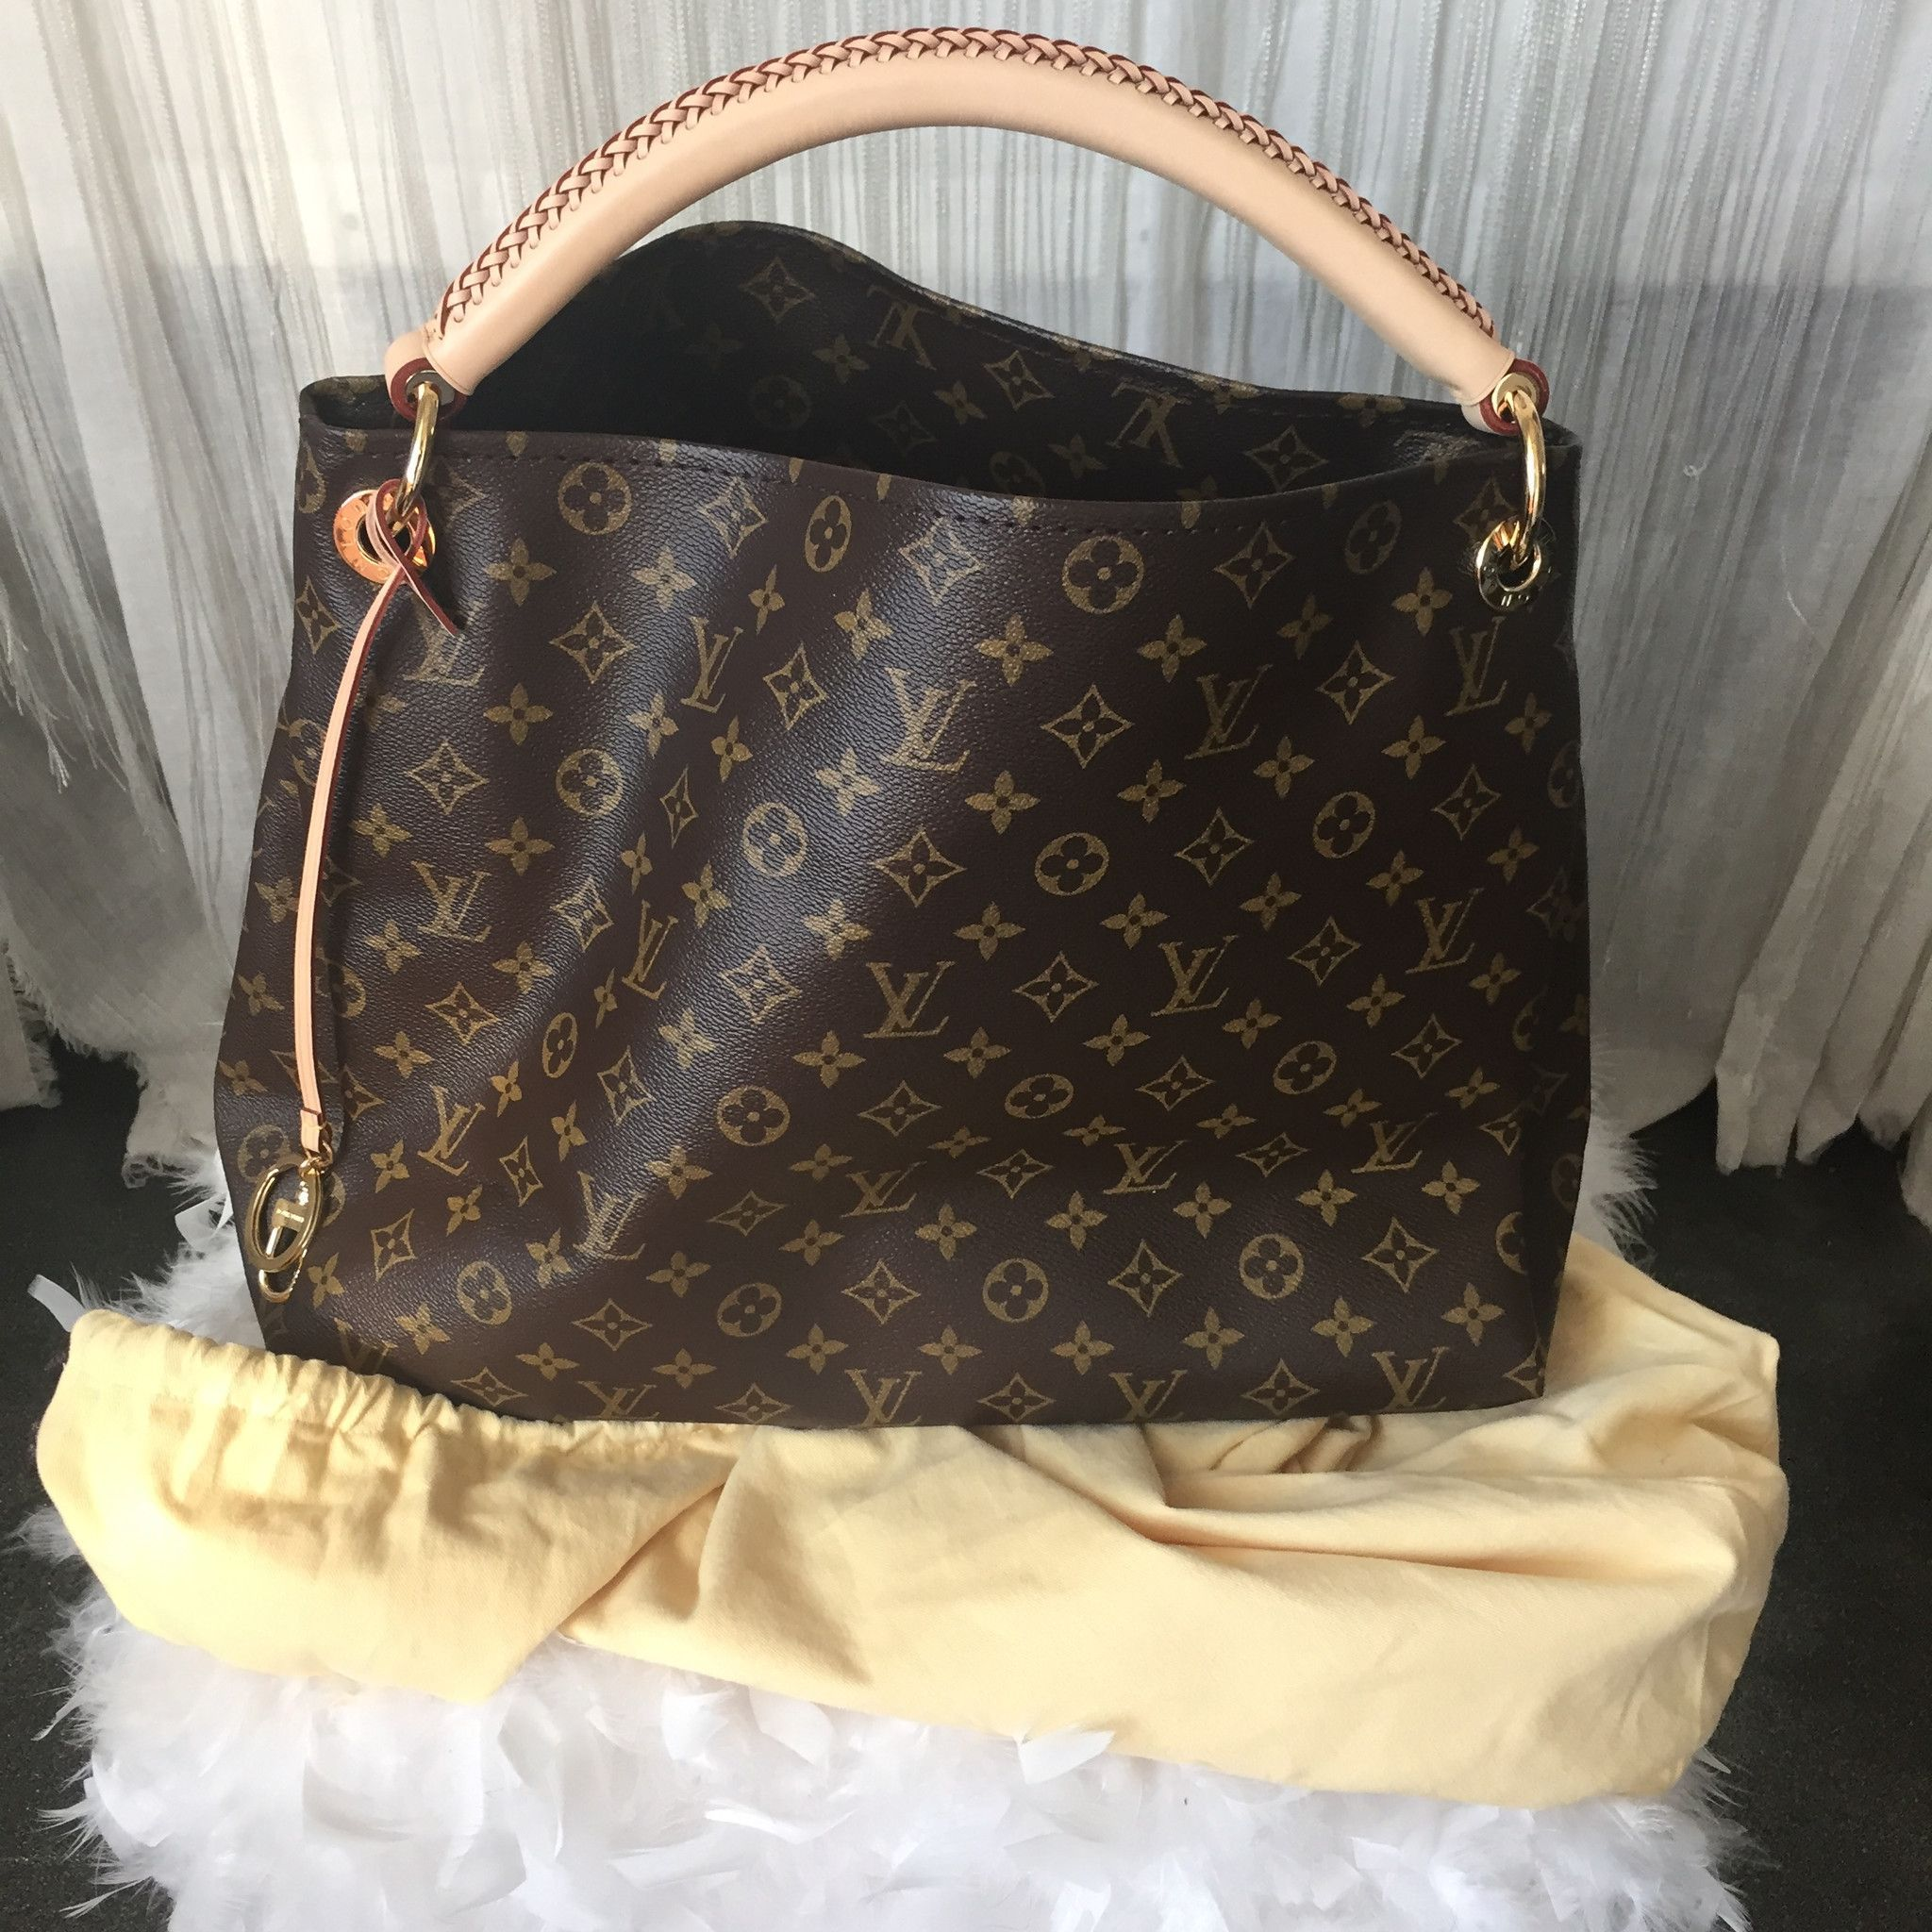 This Authentic Louis Vuitton Artsey Mm